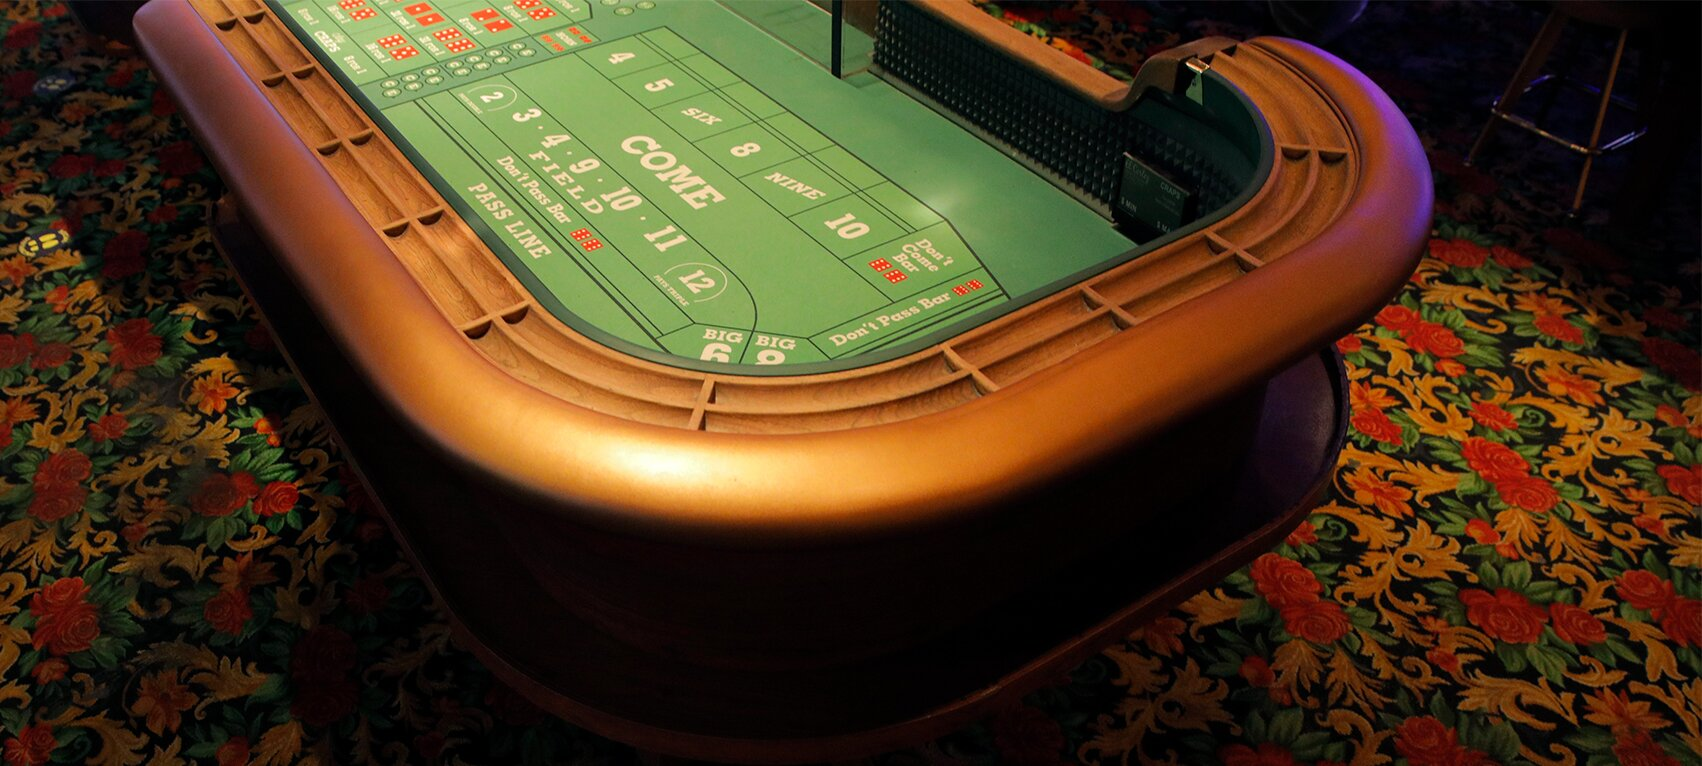 https://www.gambleonline.co/app/uploads/2021/04/blackjack-table-in-vegas-1.jpg